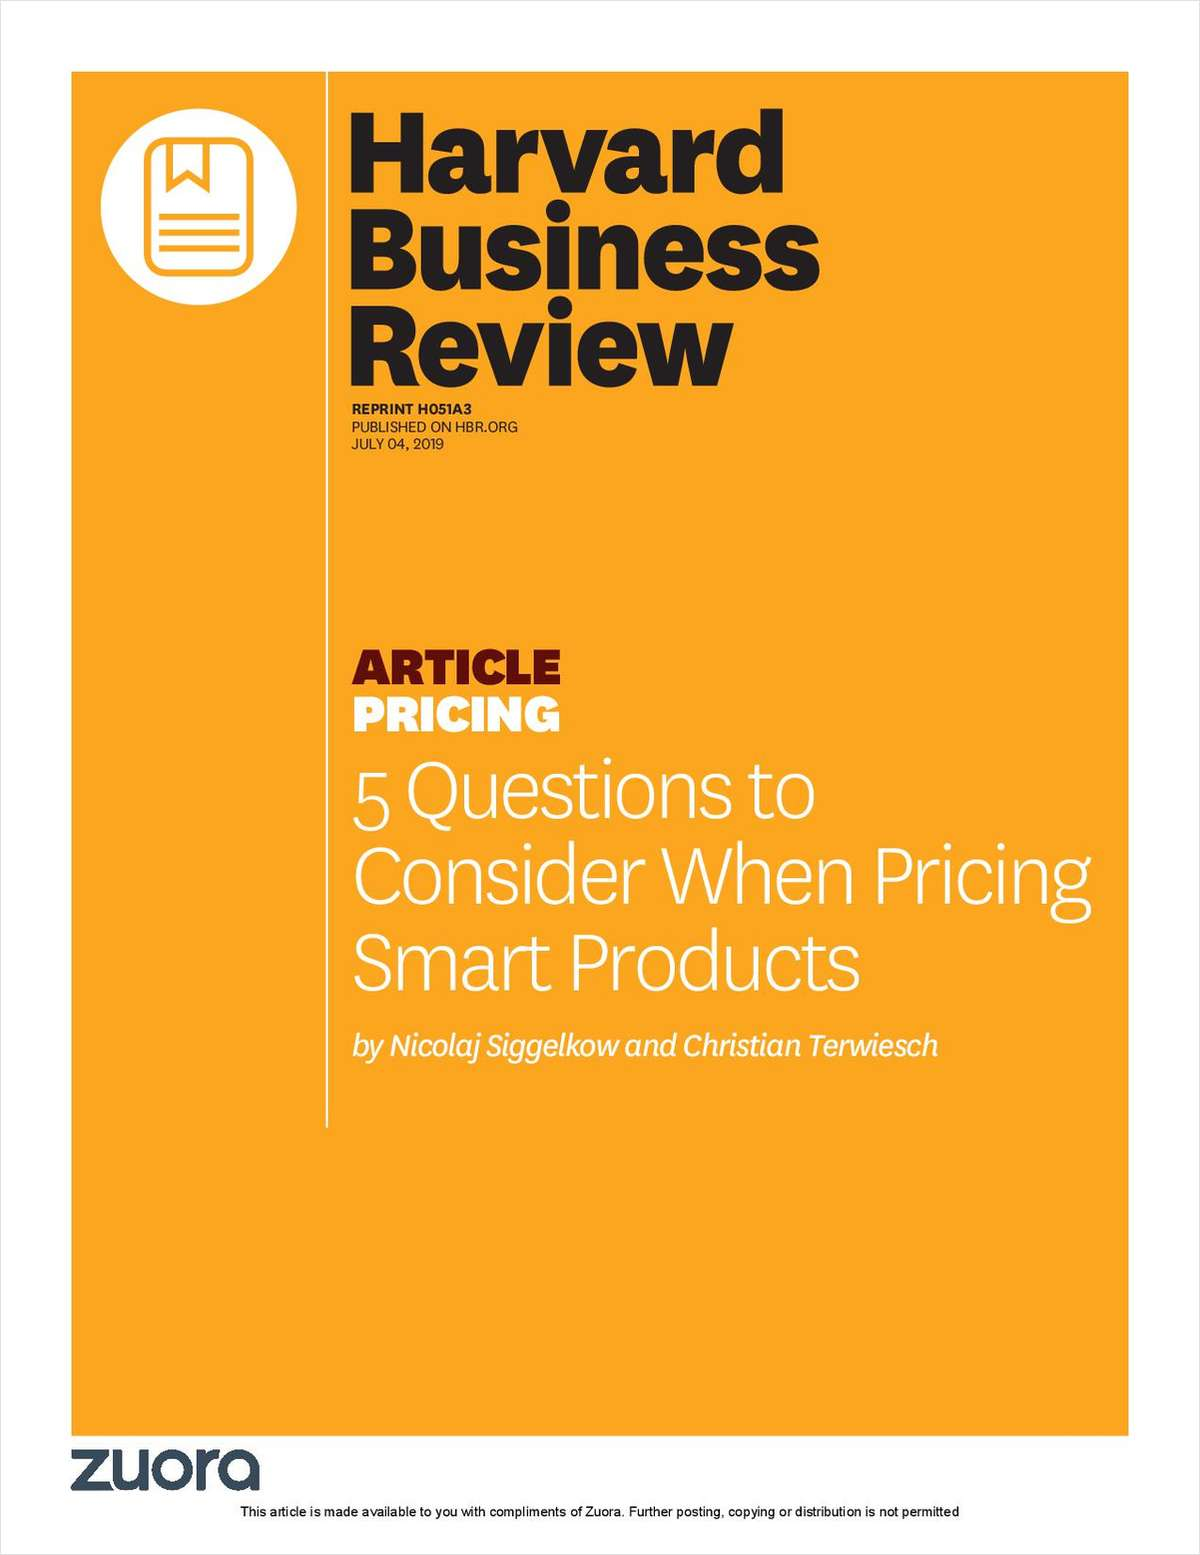 5 Questions to Consider When Pricing Smart Products